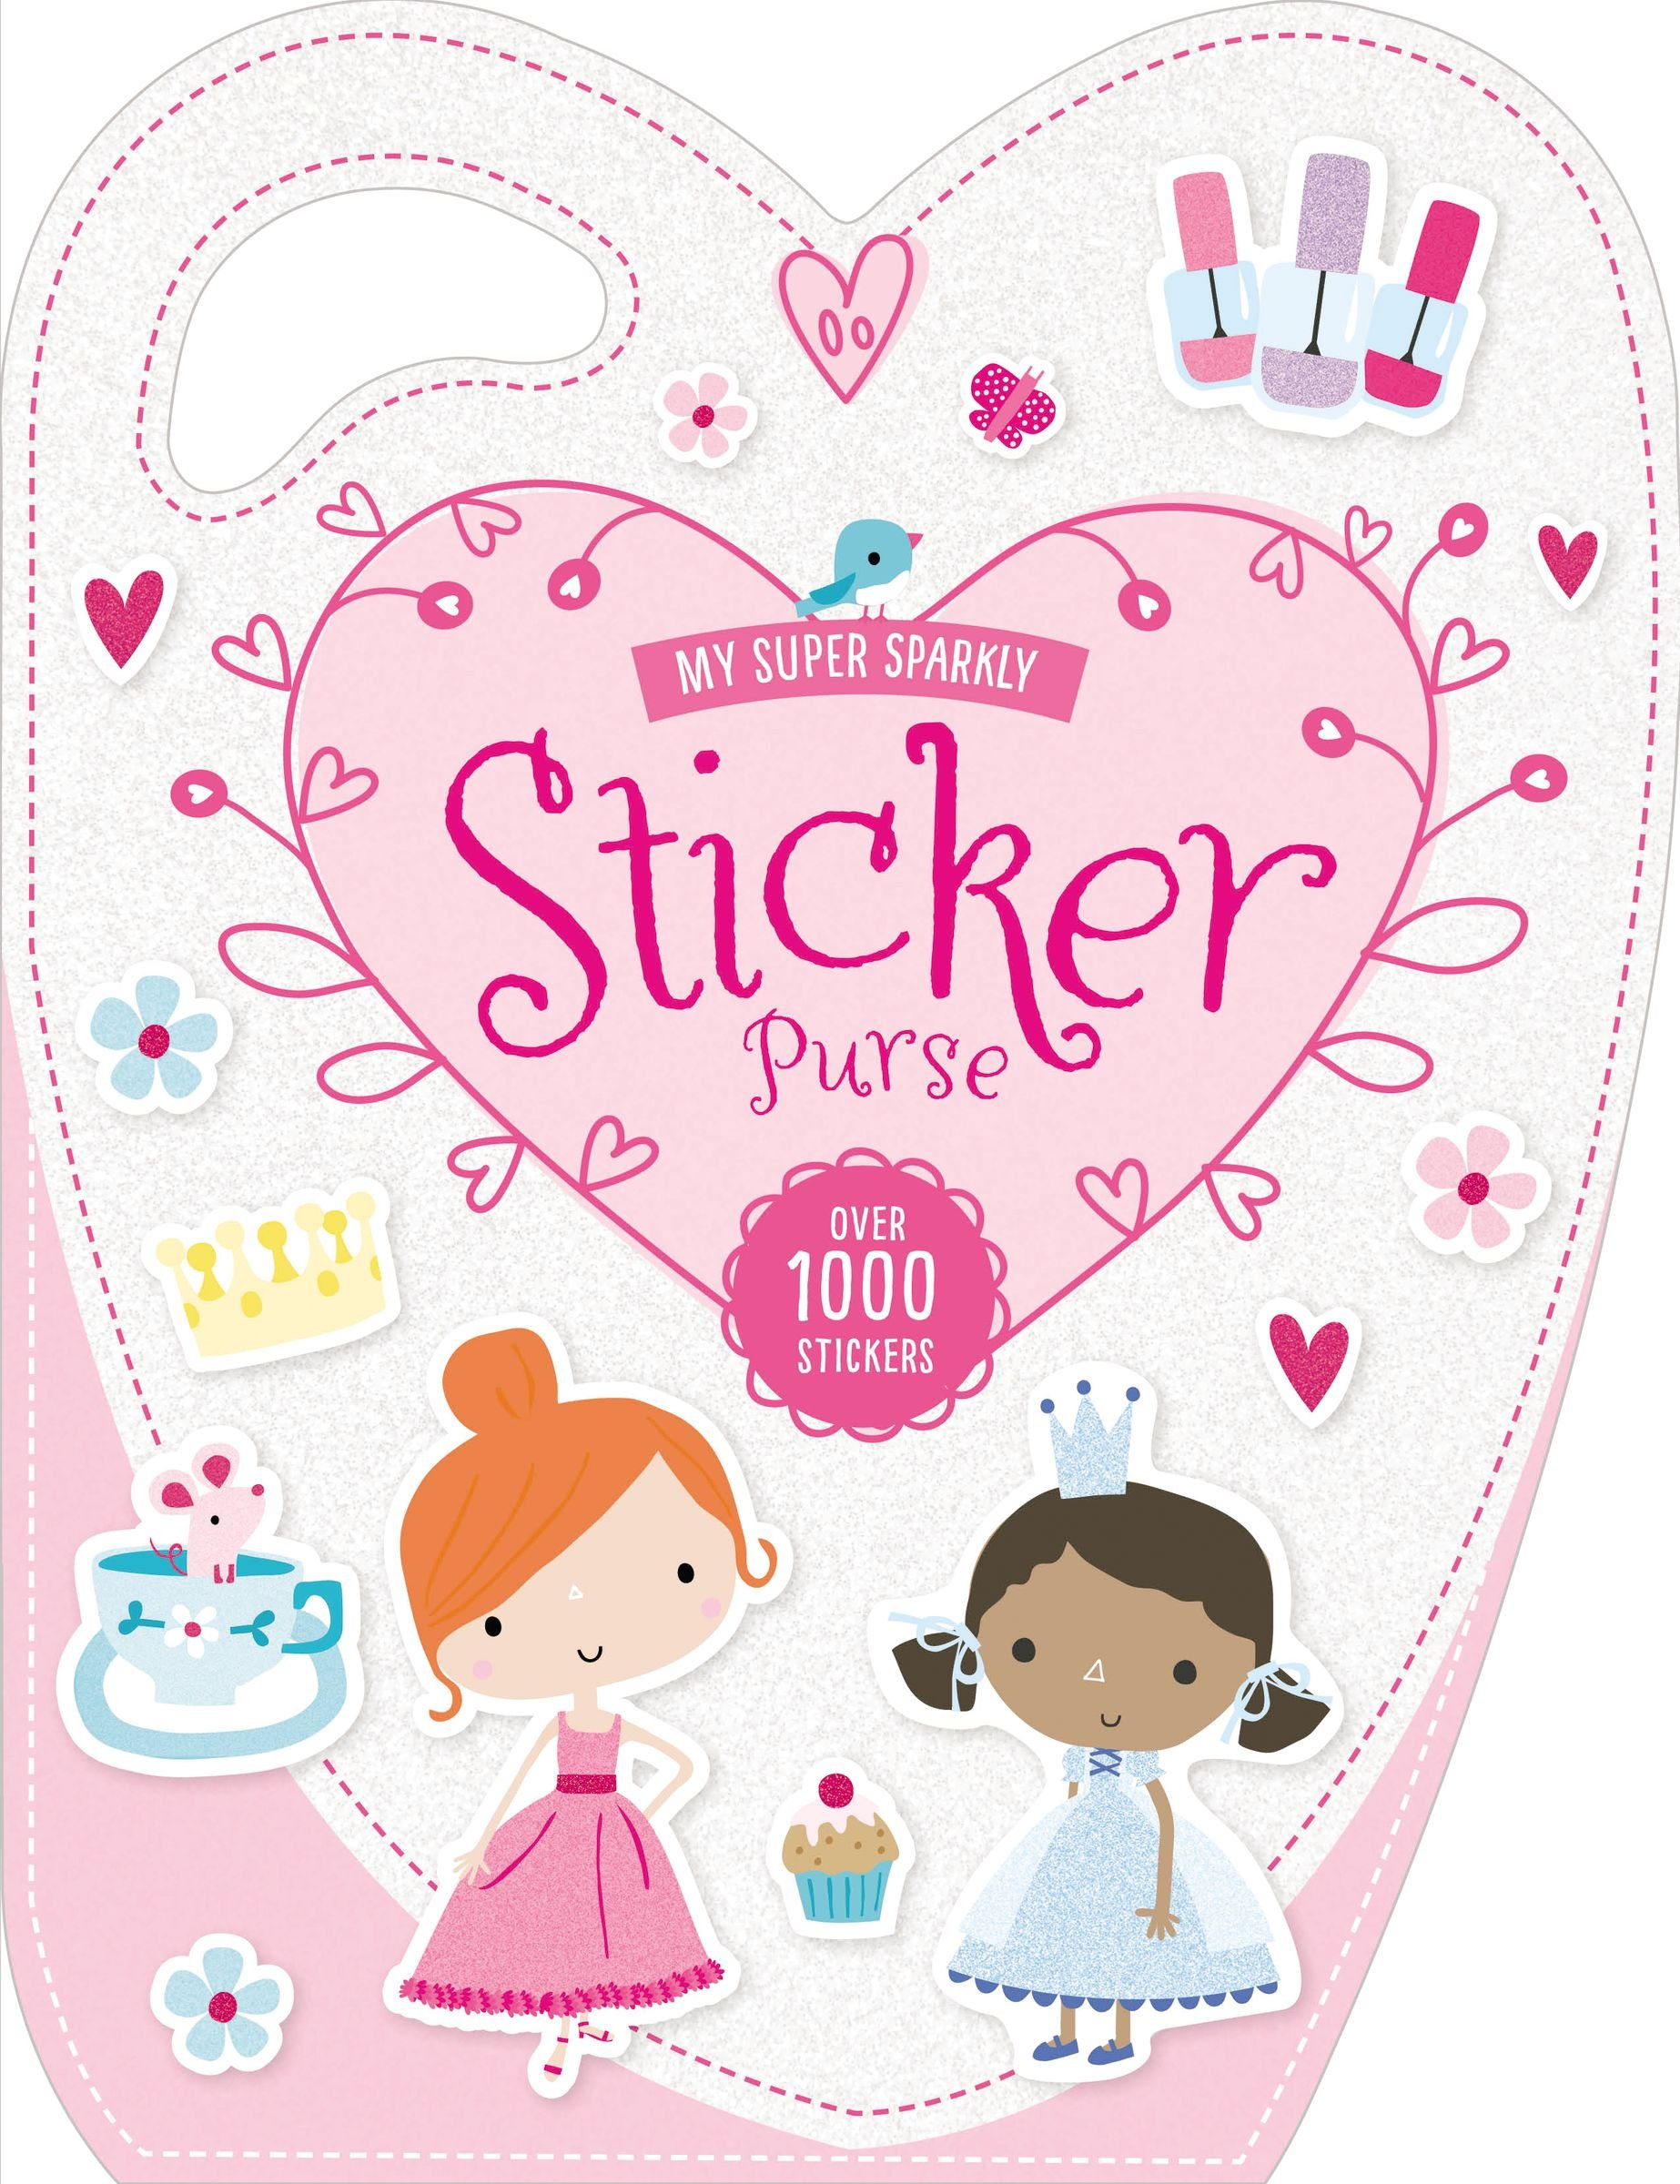 bdfdc594fd3a My Super Sparkly Sticker Purse Paperback – February 27, 2016. by Make  Believe Ideas ...